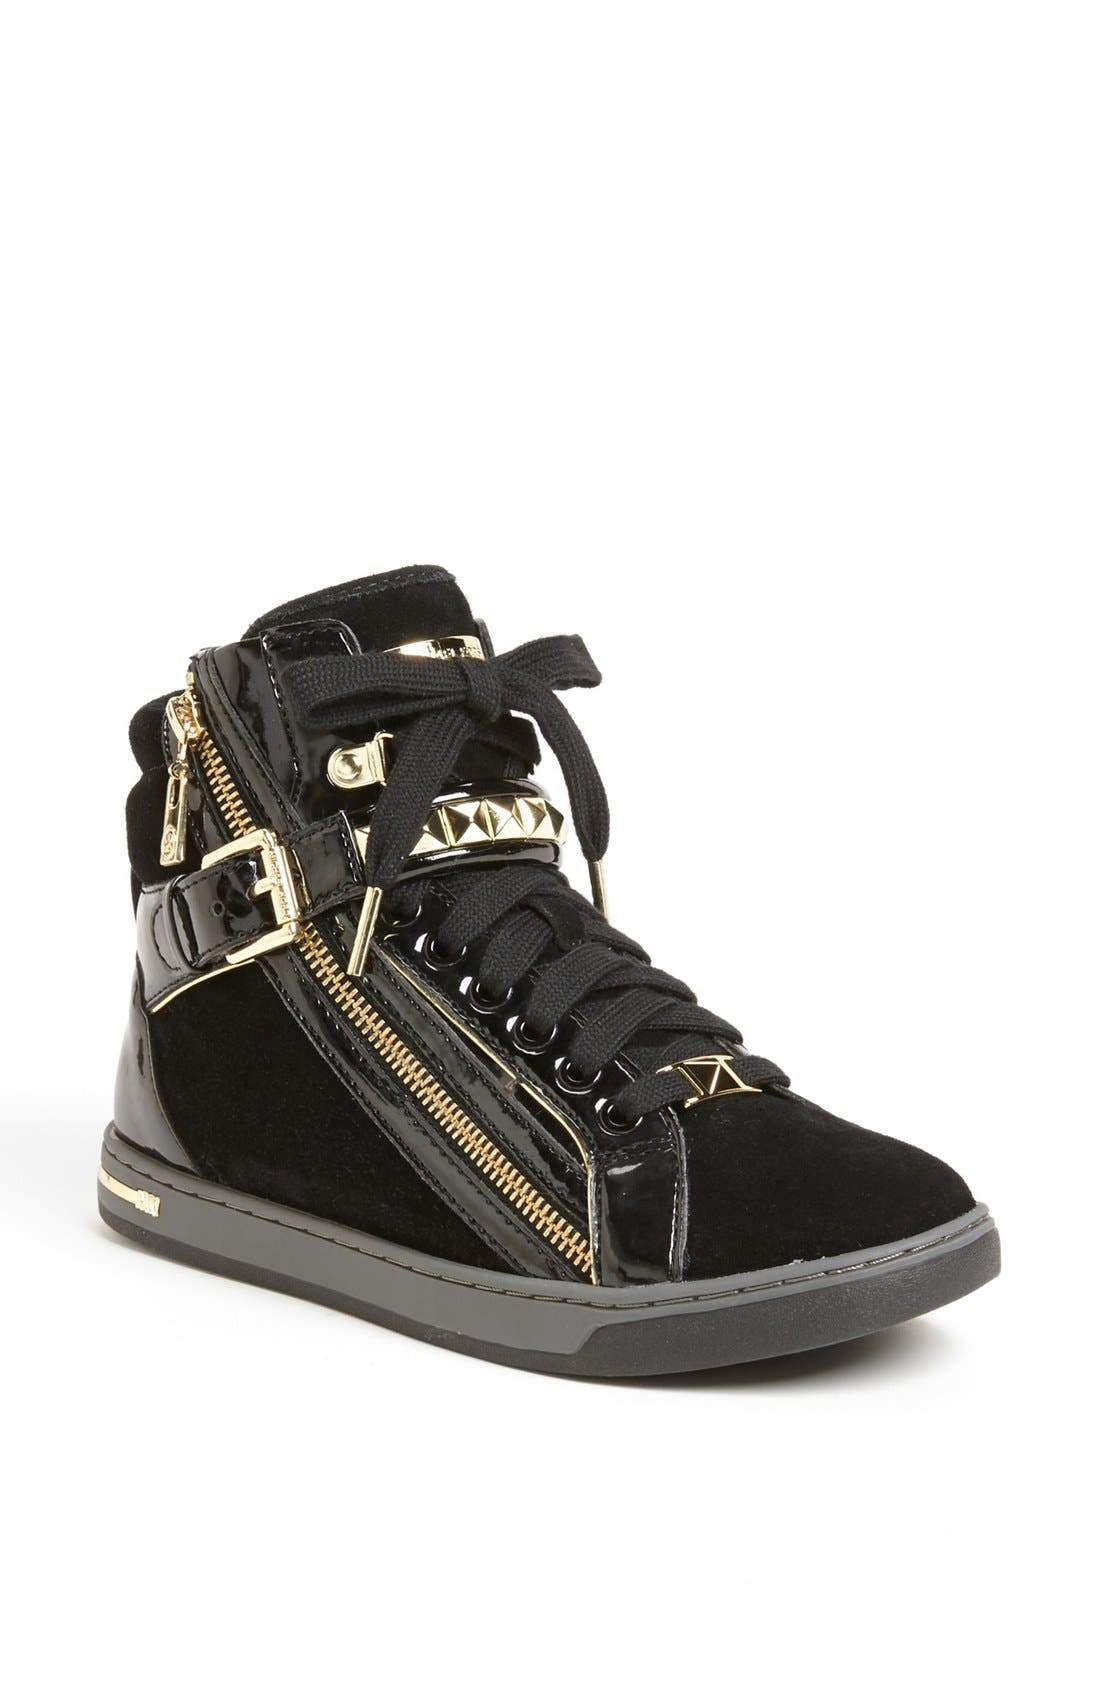 Main Image - MICHAEL Michael Kors 'Glam' Studded High Top Sneaker